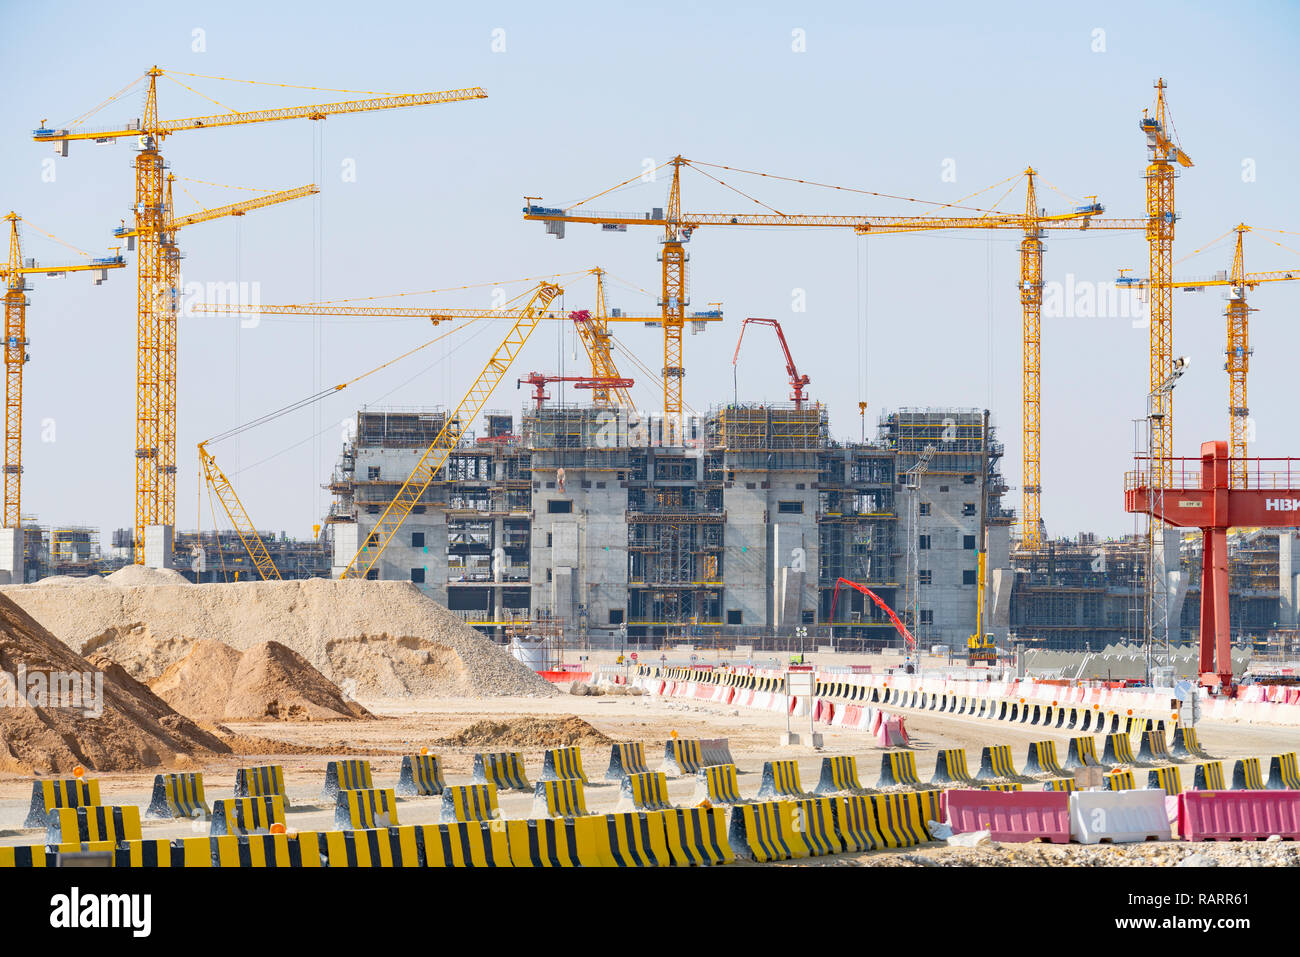 Construction of Lusail Stadium the venue for the FIFA World Cup Final 2022 in Lusail City new town under construction in Qatar, Middle East - Stock Image